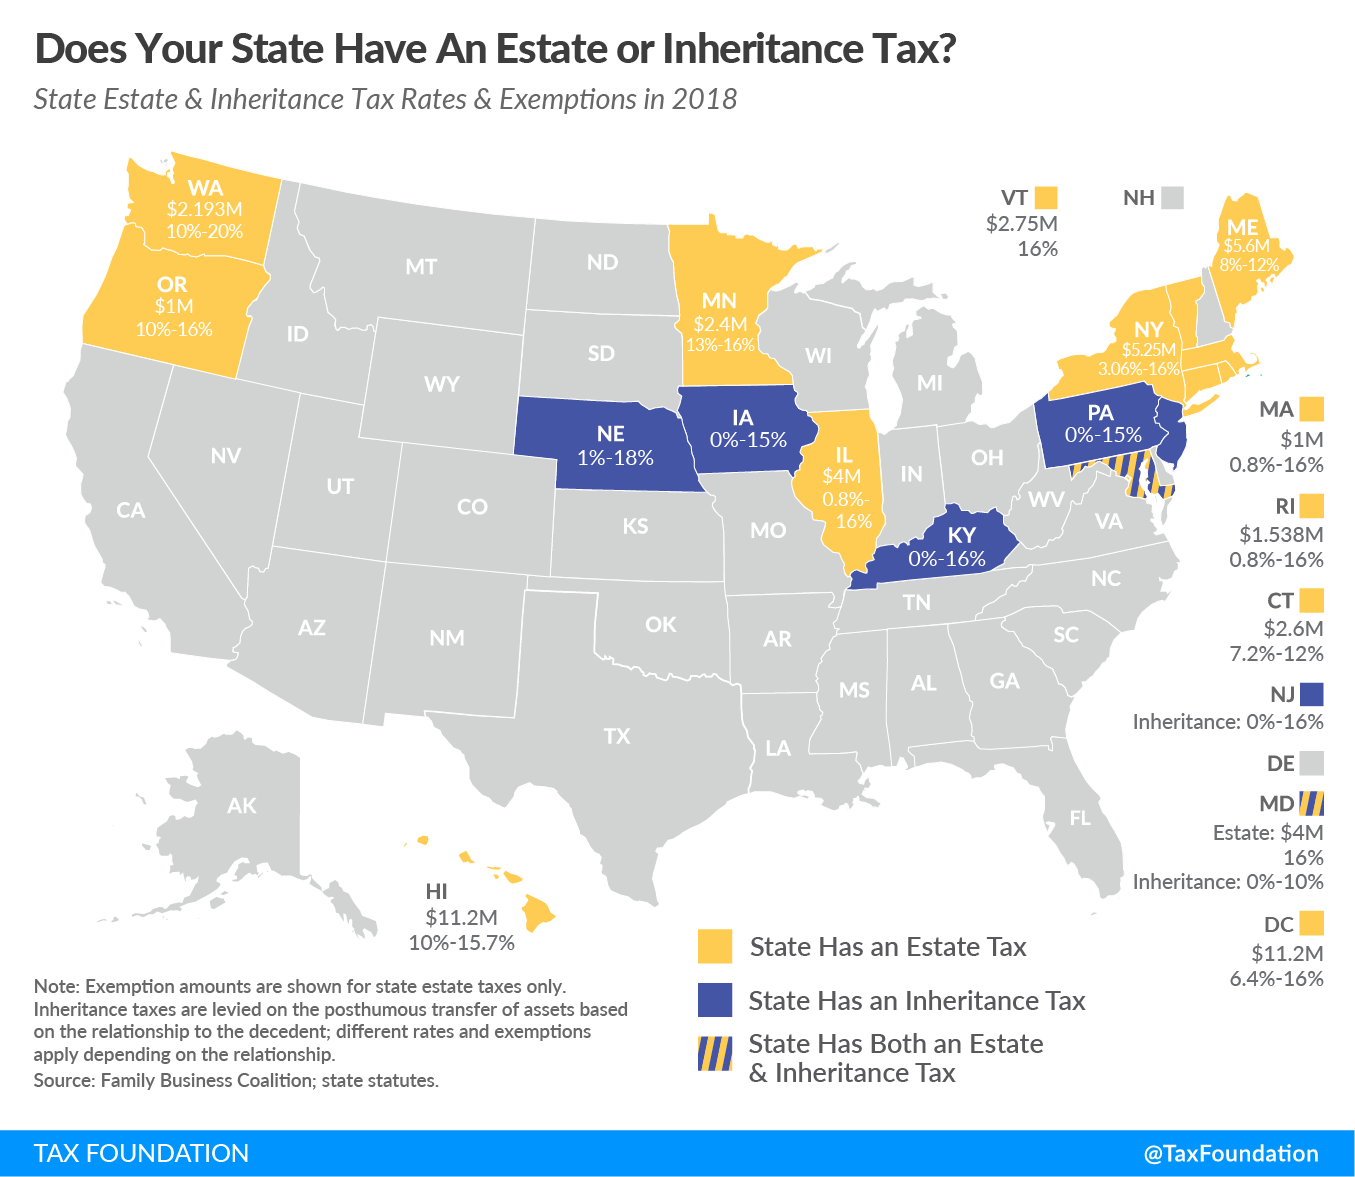 State Estate Tax Inheritance Tax Map 2018